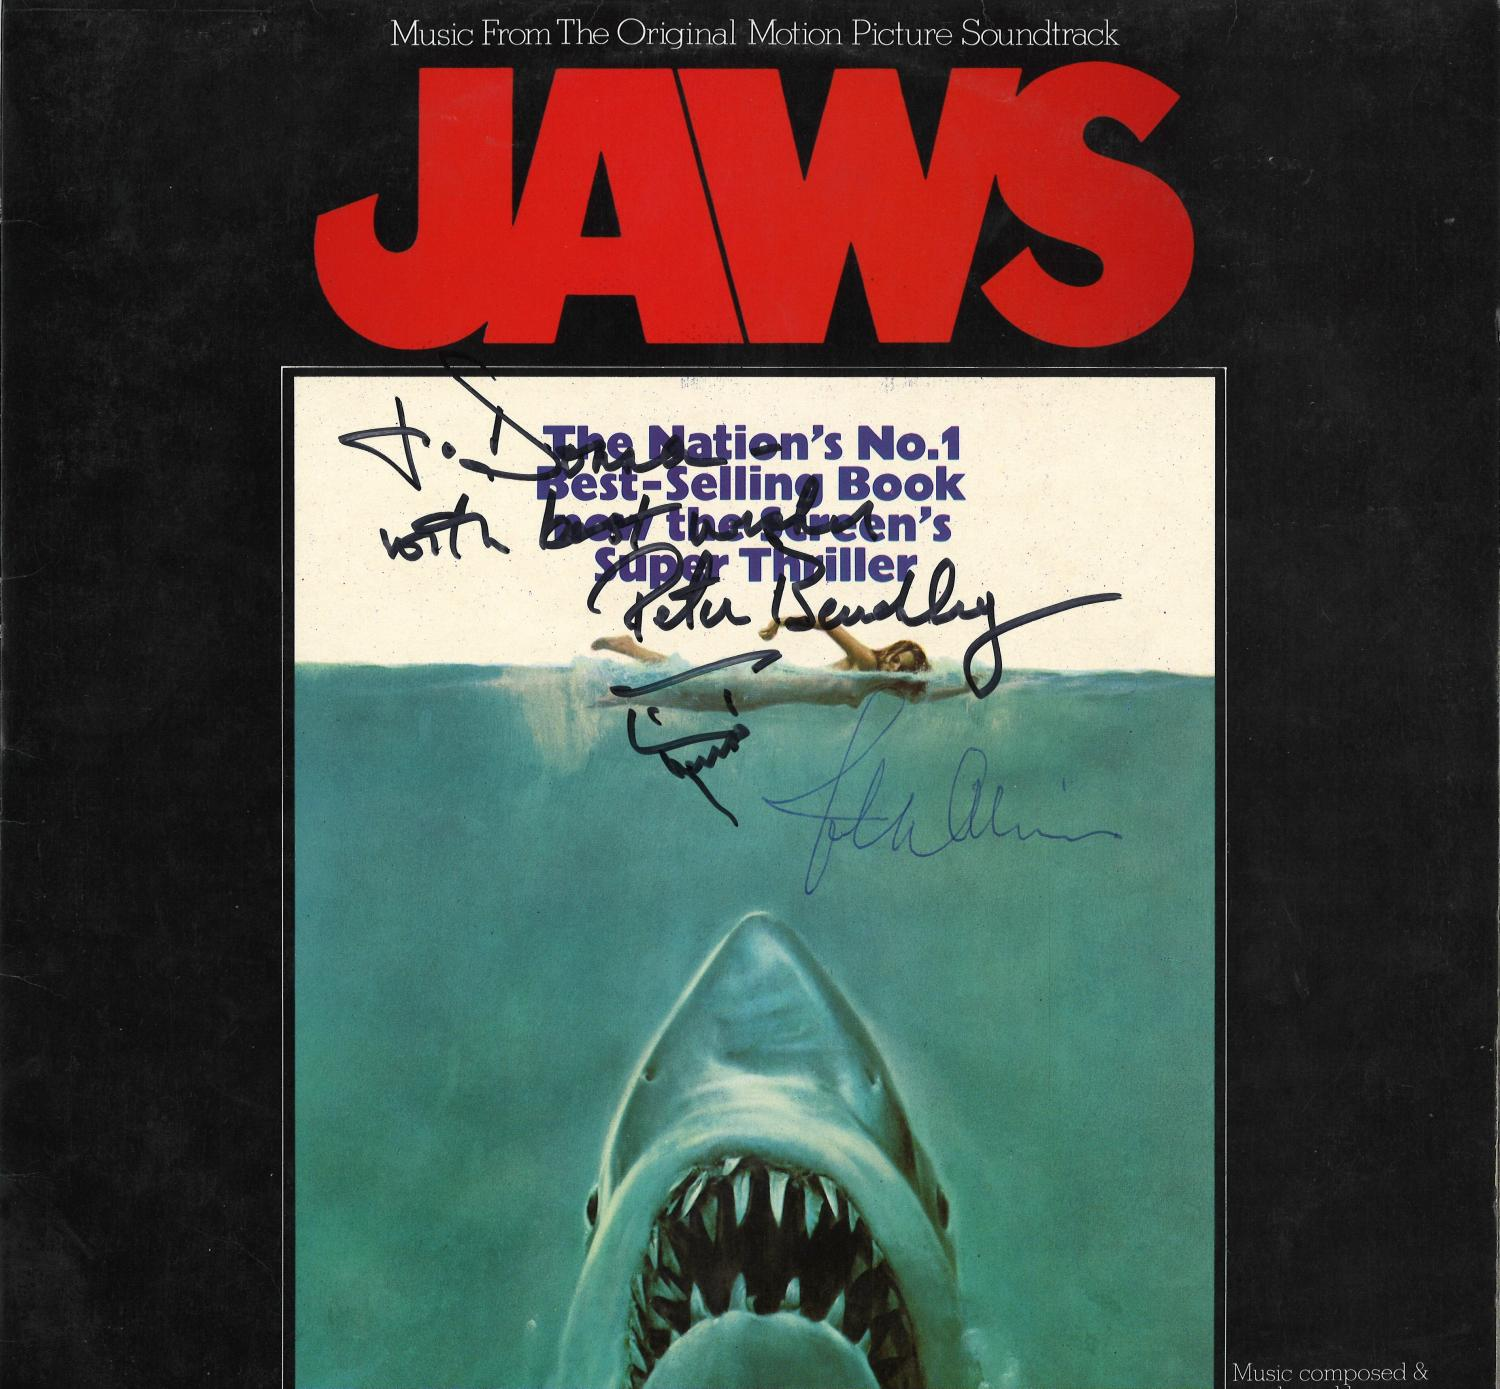 Lot 29 - Jaws album picture sleeve signed by John Williams and Peter Benchley. Vinyl record included. .